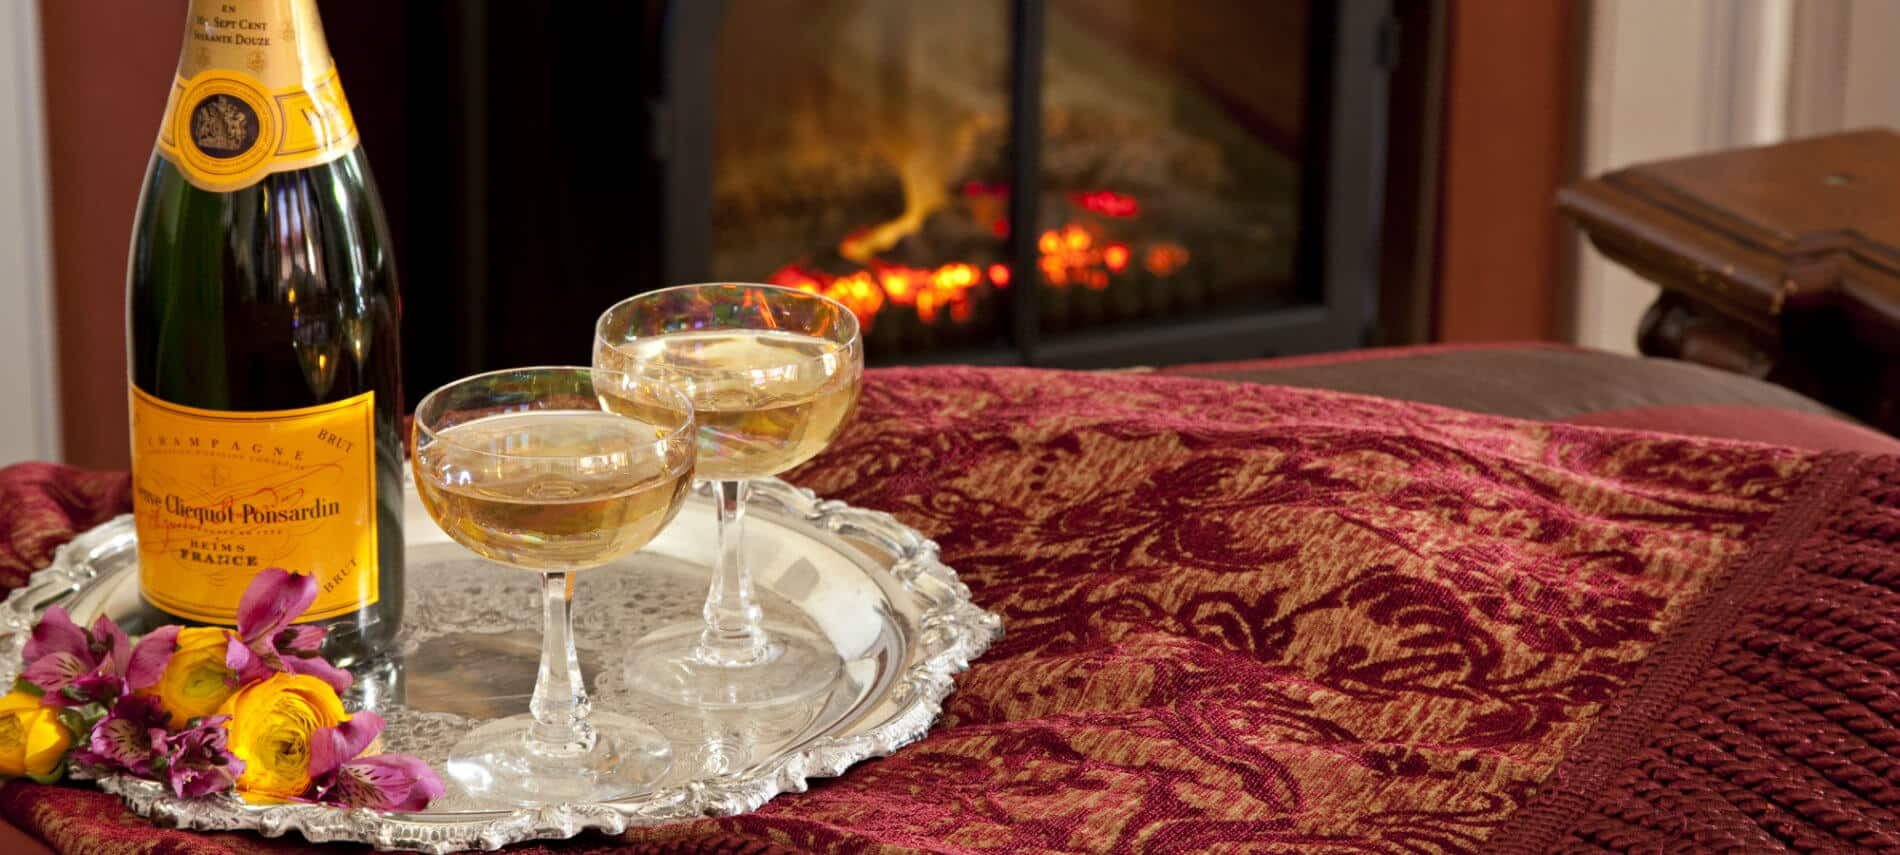 Silver tray topped with wine and two wine glasses near a glowing fire